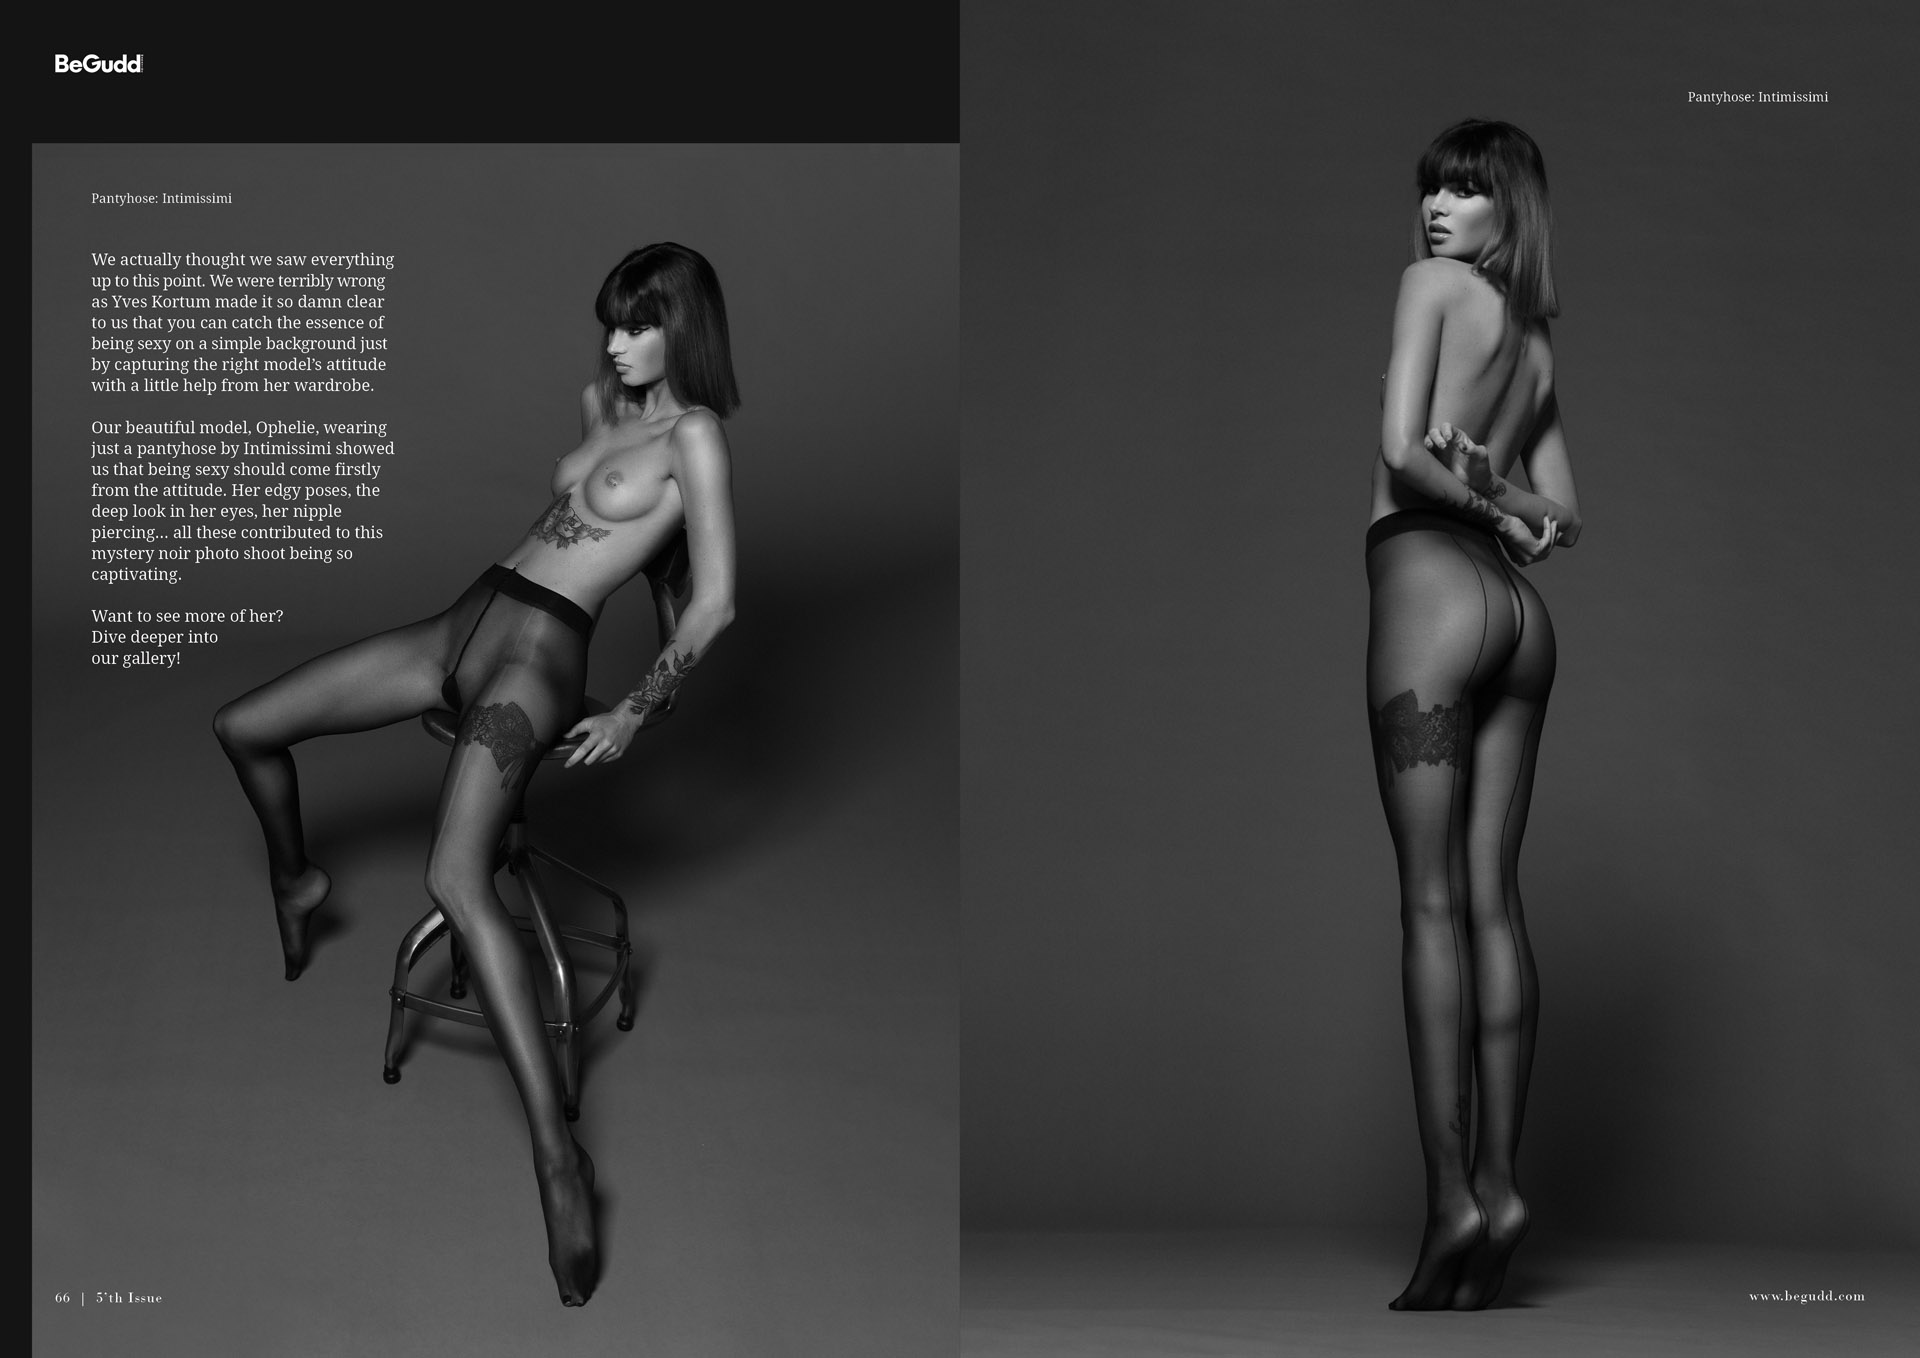 begudd magazine fashion editorial sexy black and white long legs lingerie calzedonia ophelie by yves kortum